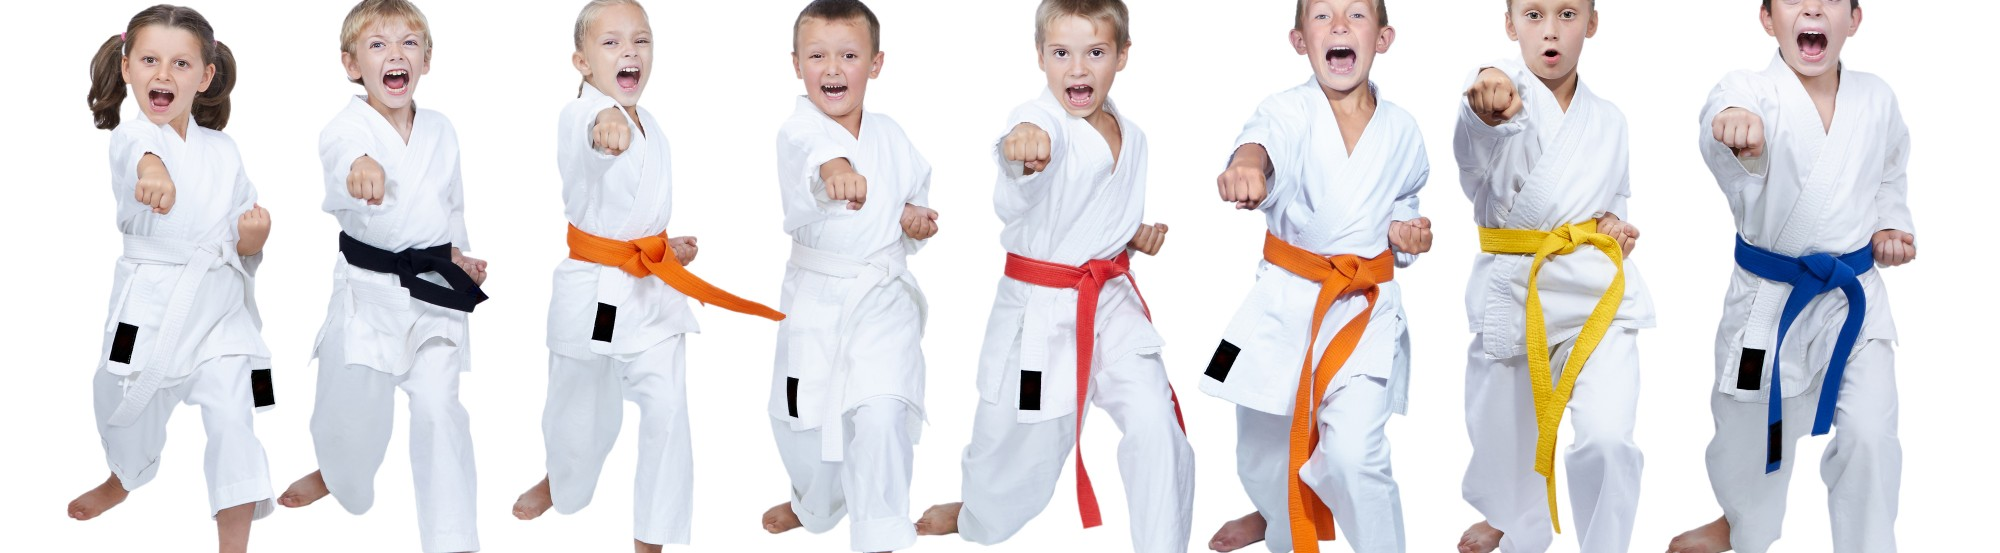 Taekwondo Children Training